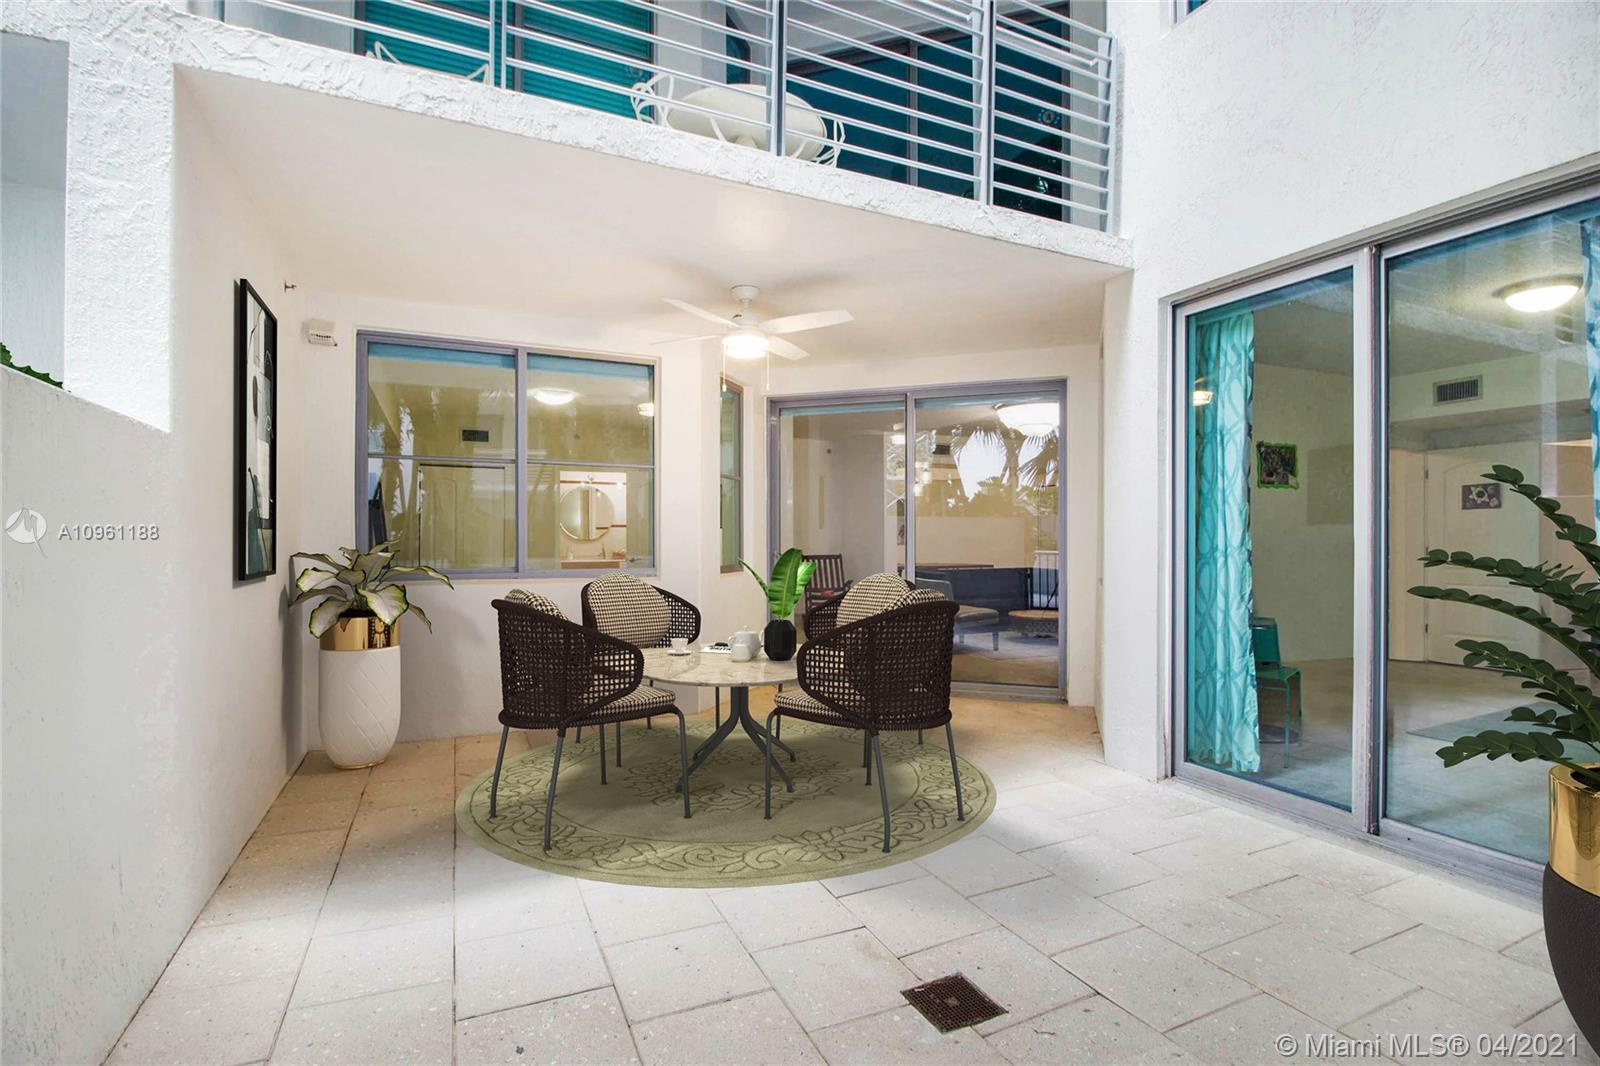 Cosmopolitan #1308 - 110 Washington Ave #1308, Miami Beach, FL 33139